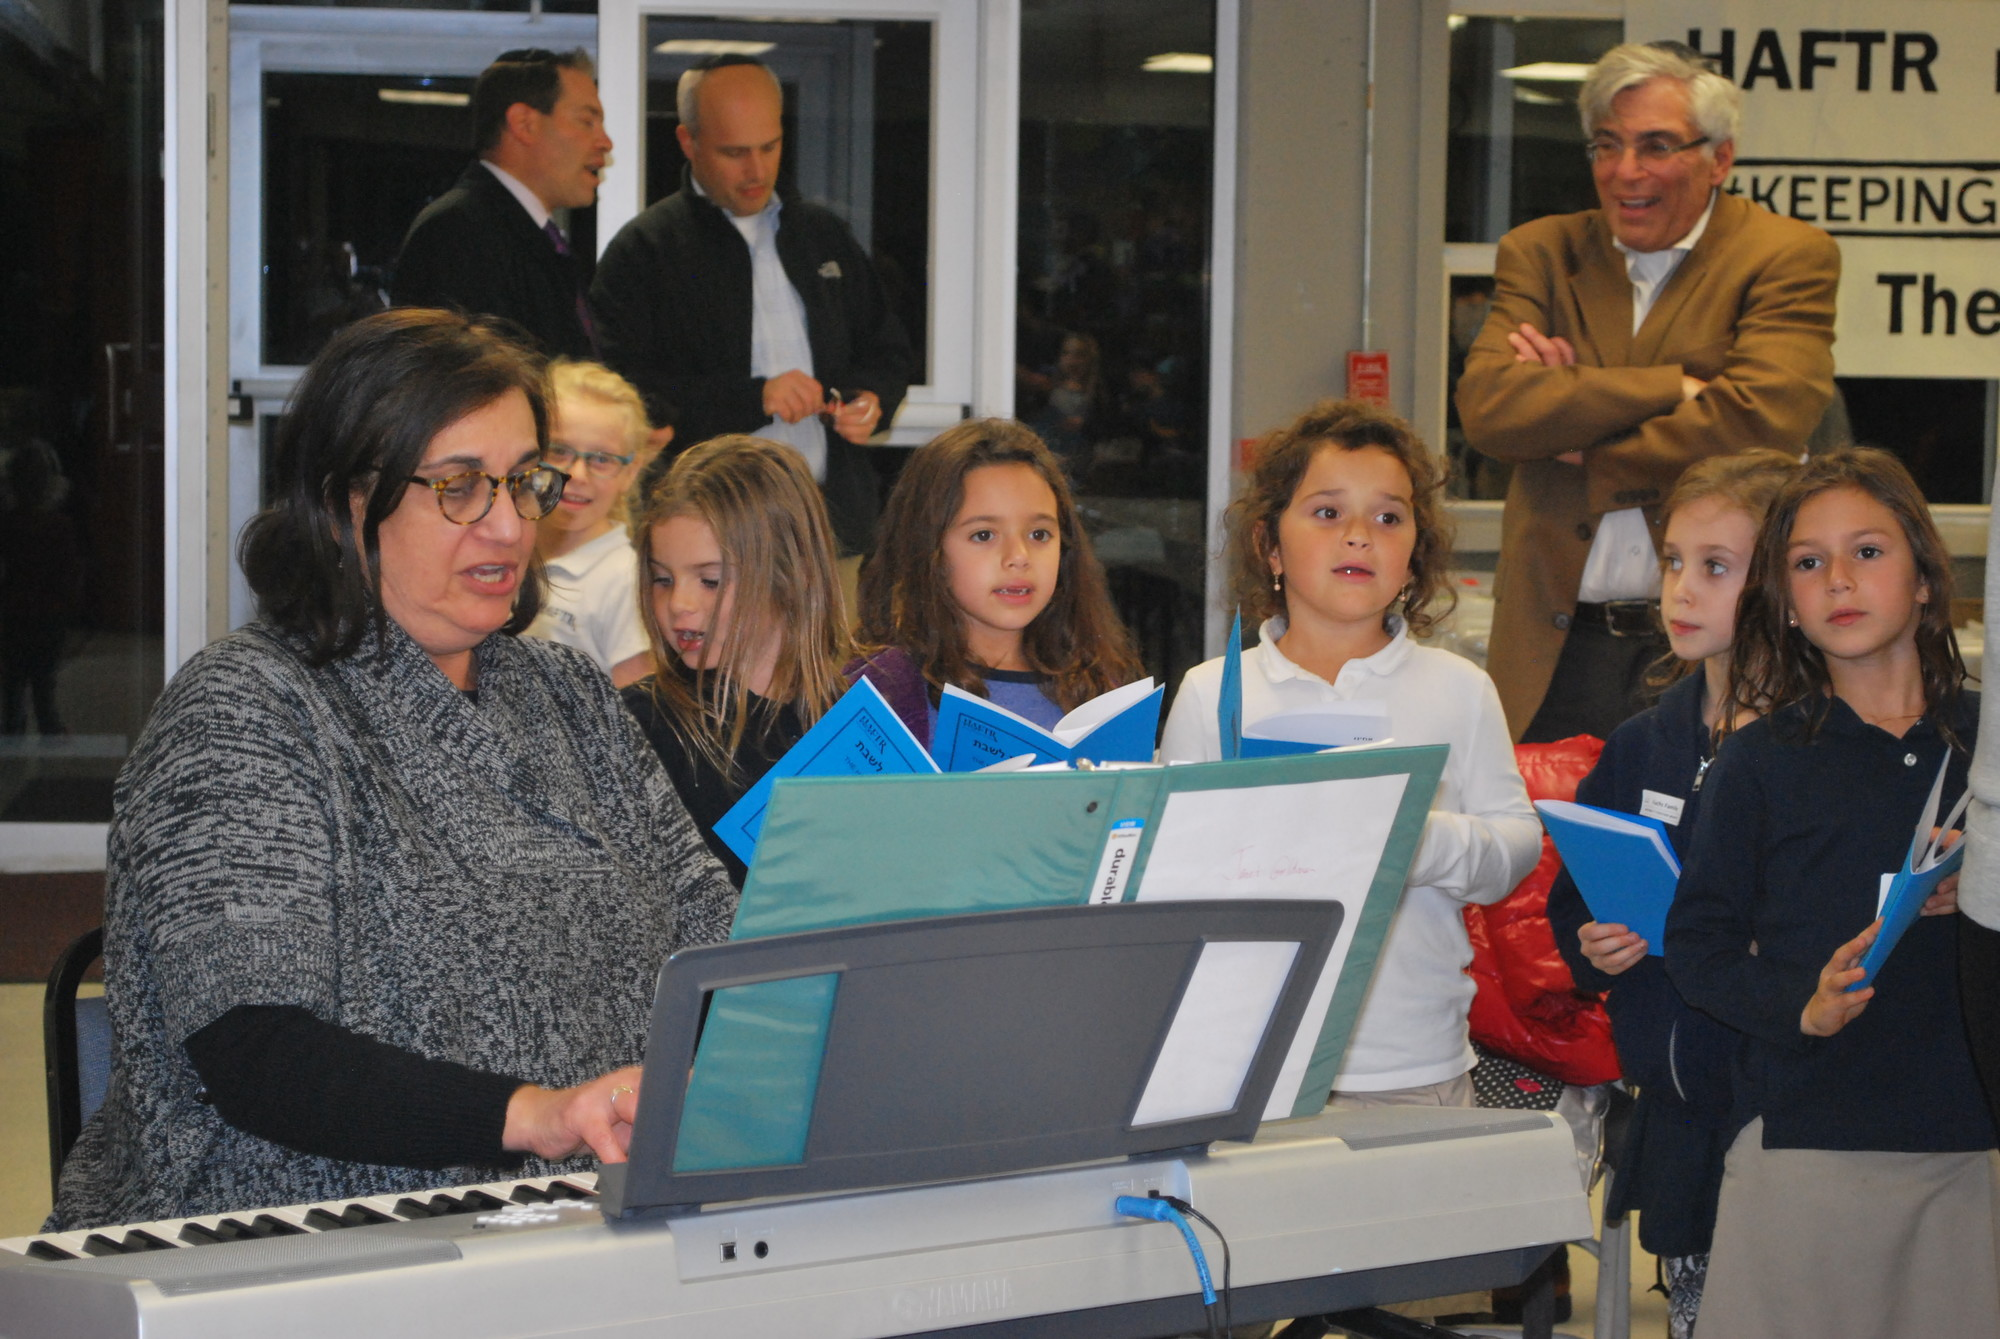 Music teacher Janet Goldman led the children through a few songs during the event.